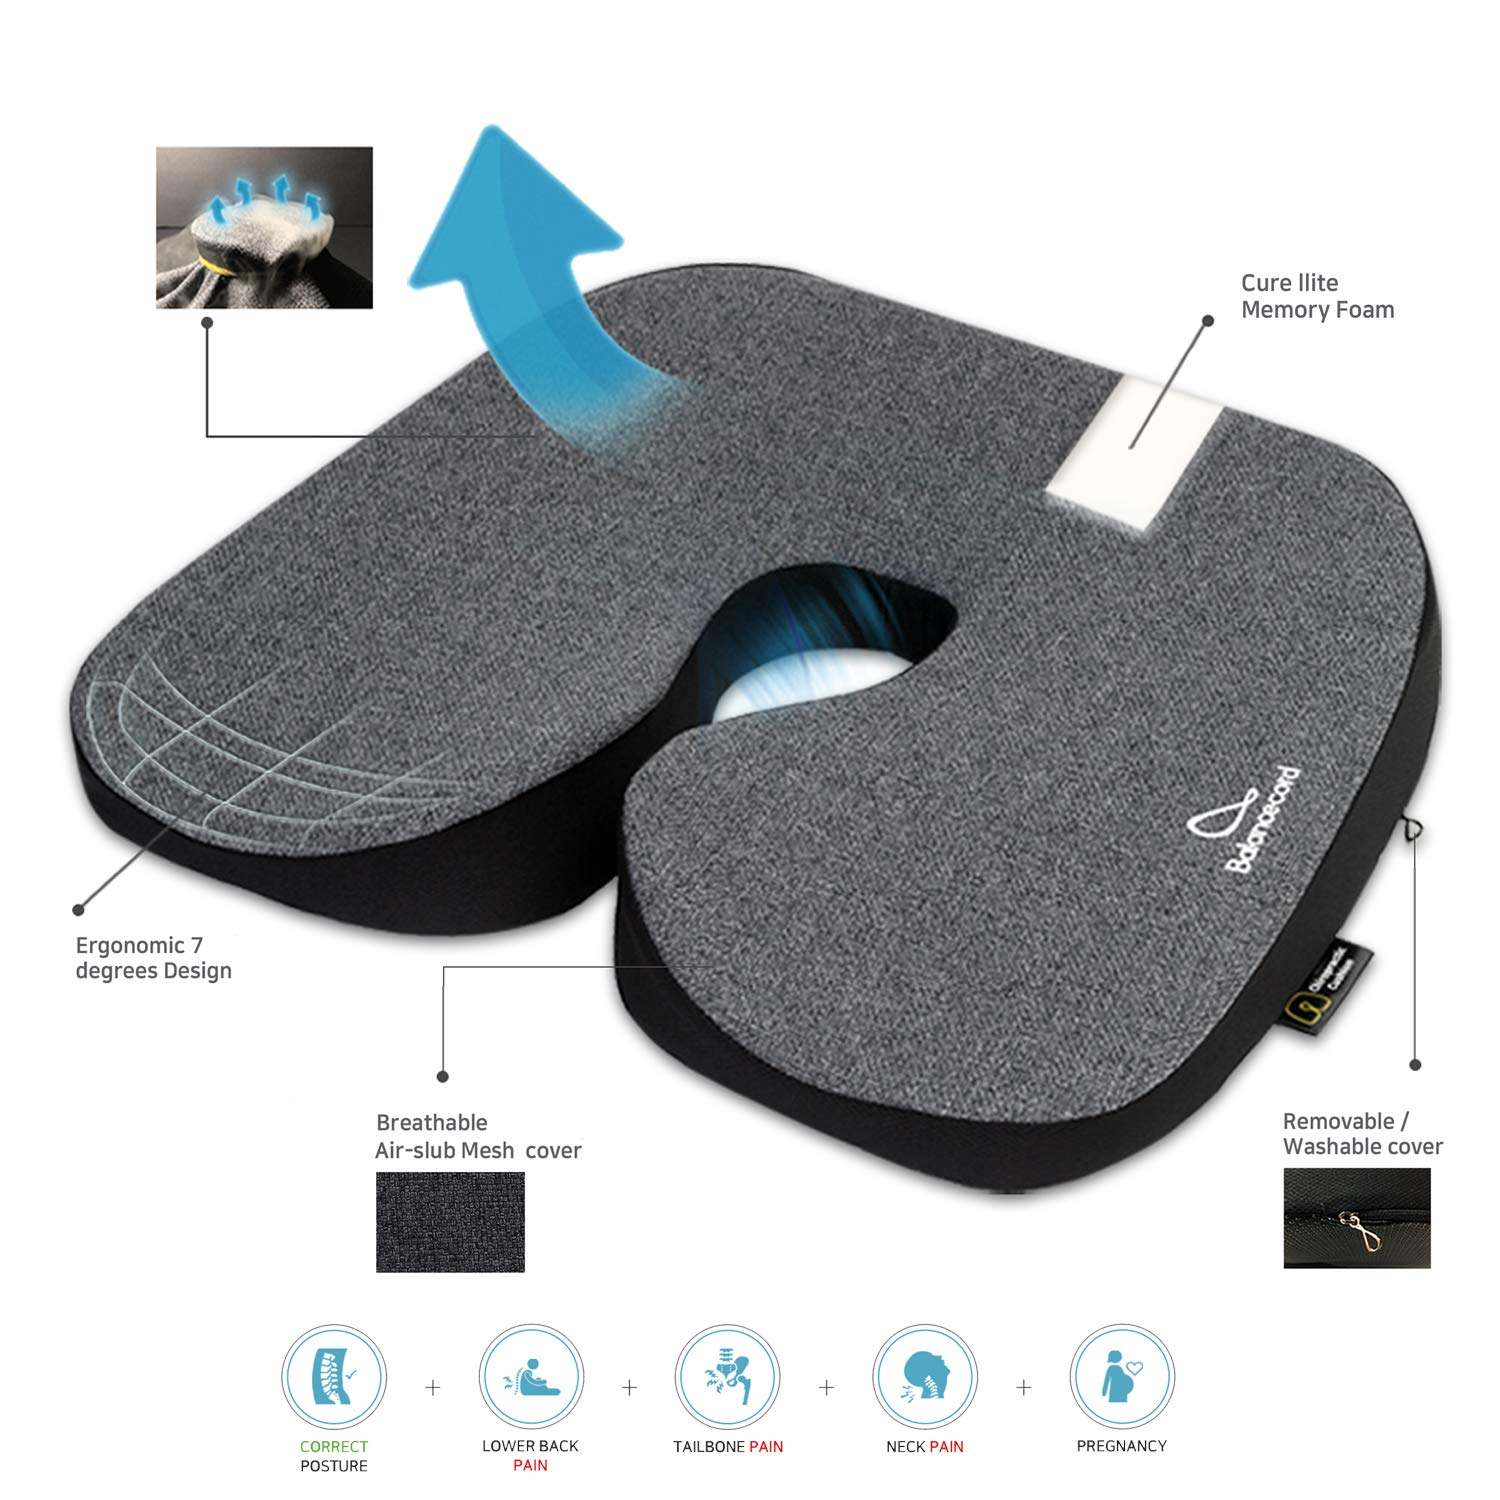 Balancecord Chiropractic Memory Foam Seat Cushion for Office Computer Chair, Non Slip Bottom Ventilated Cover Helps with Coccyx, Tailbone Back Pain Big Size Multi Color